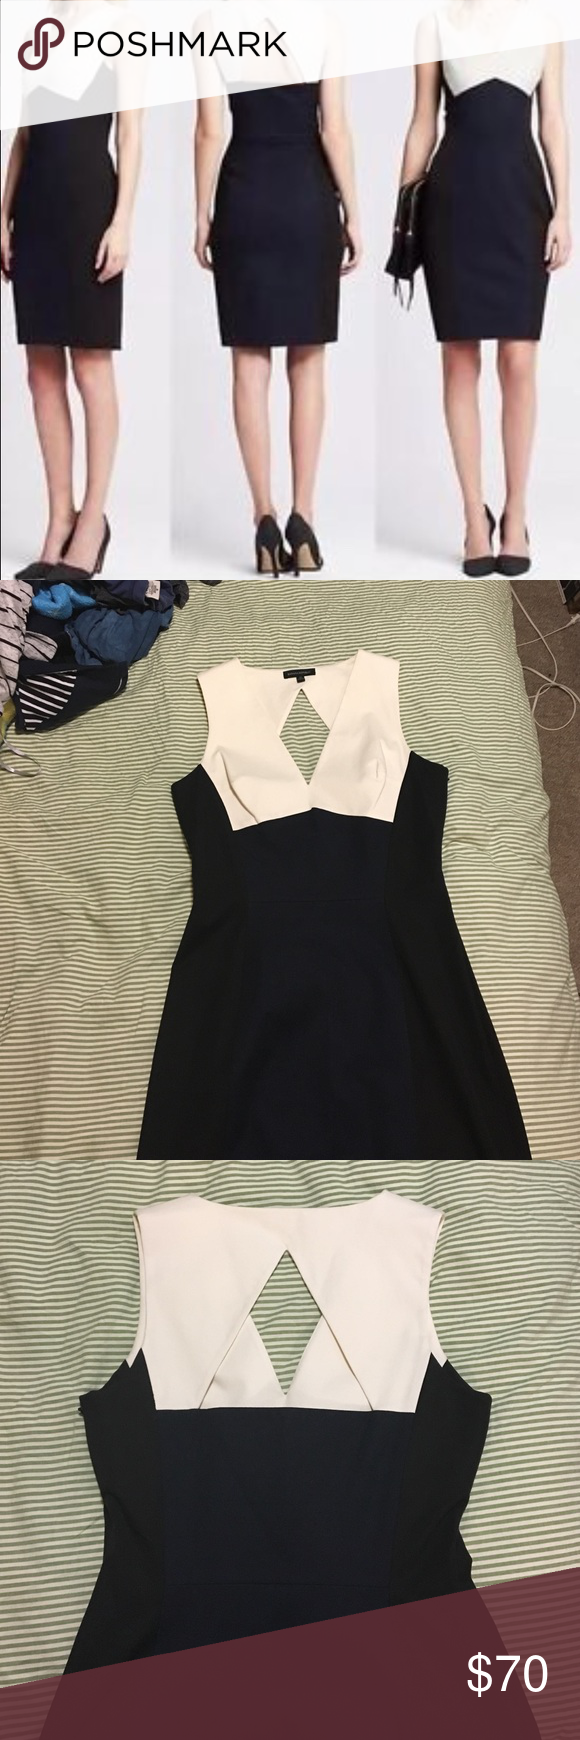 Banana Republic Colorblock Sheath Dress, Sloan Fit Banana Republic Colorblock dress, cut in a deep V in the front with a Triangular cutout in the back.  Perfect for work or upcoming holiday party season.  Side Zip with front and back navy panels, black side panels and white top panels.  Very flattering, bodycon fit in the style of the classic Sloan dress.  Never worn, size 14. Banana Republic Dresses Midi